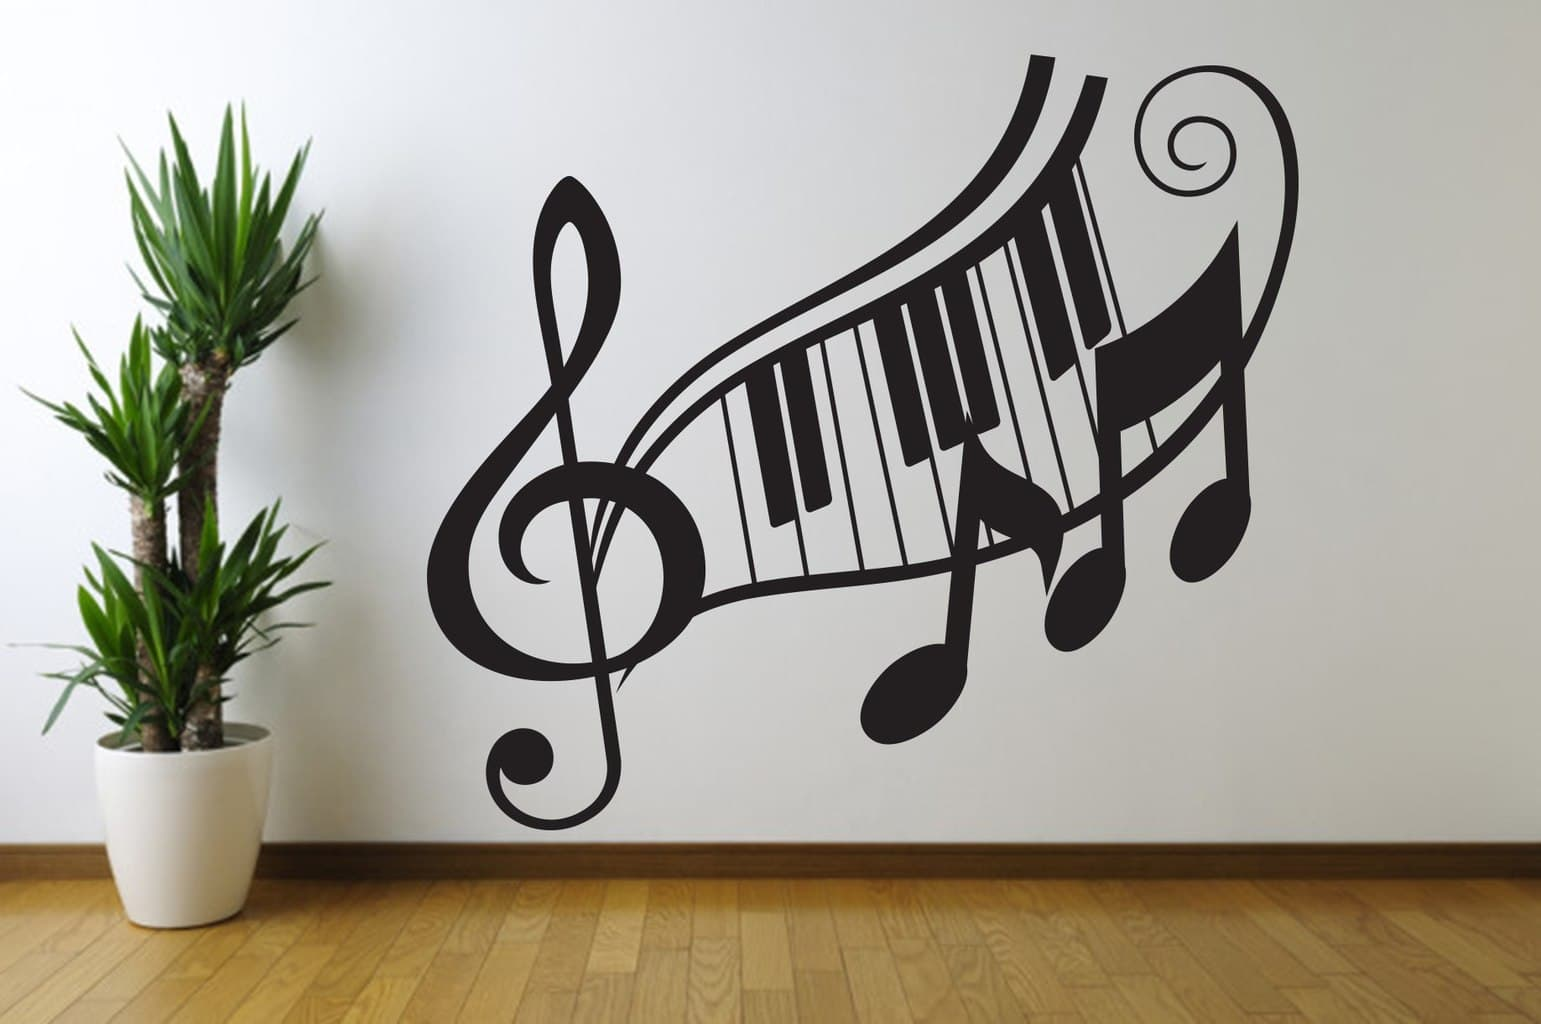 Fresh Music Note Wall Art Treble Clef Decal Wallpaper - Music Notes Wall Art , HD Wallpaper & Backgrounds